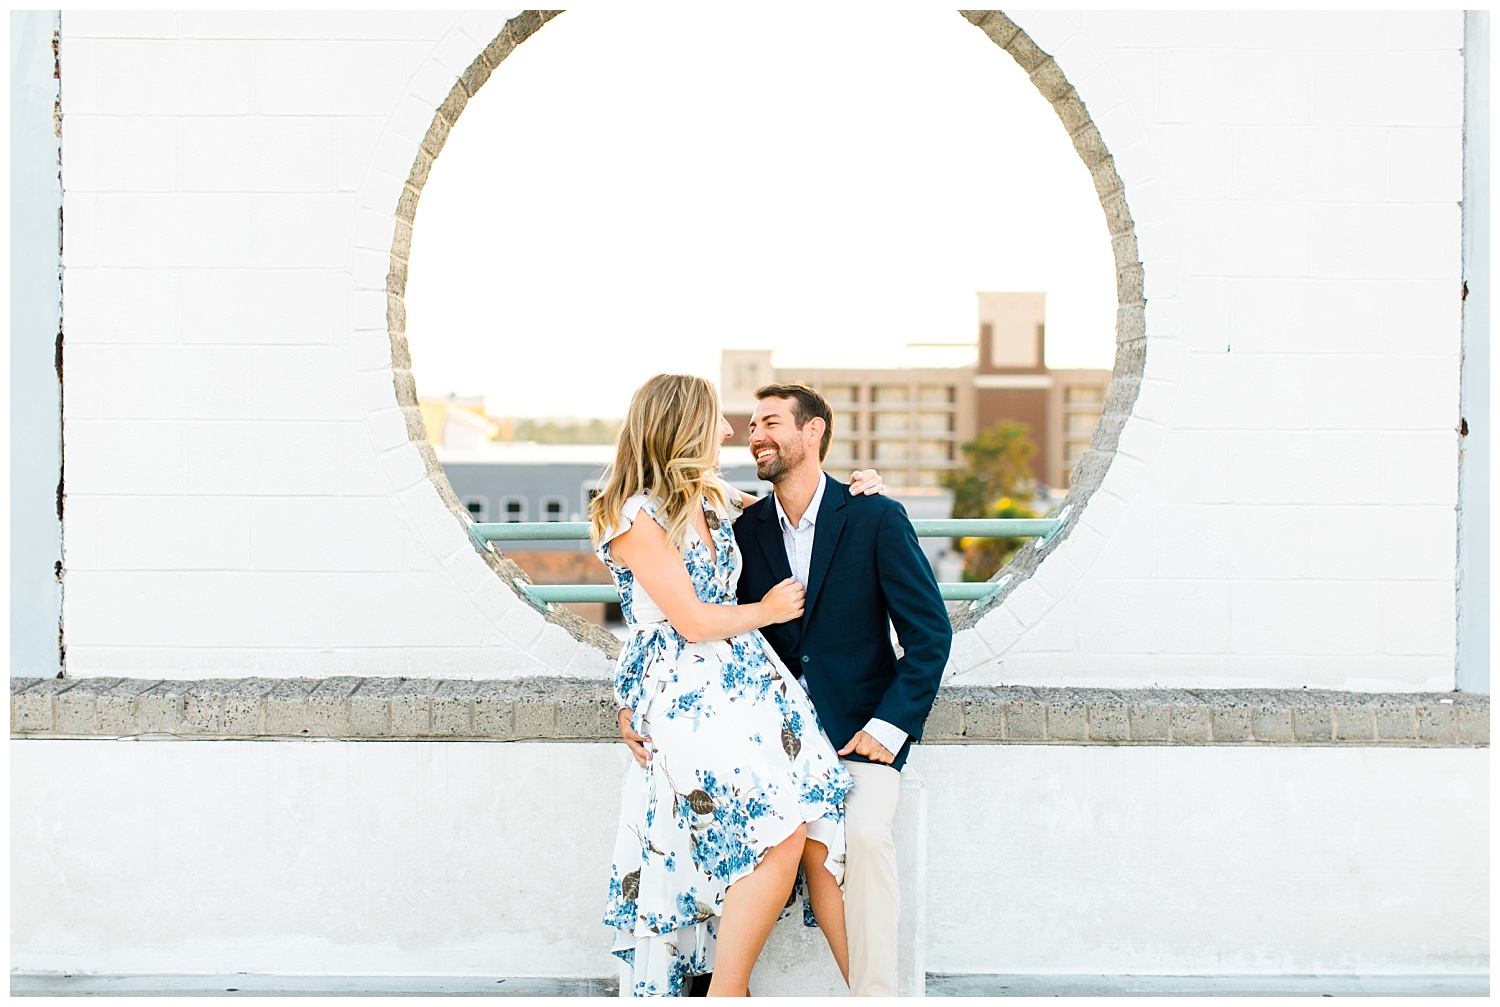 Downtown Wilmington NC Engagement_Erin L. Taylor Photography_0007.jpg